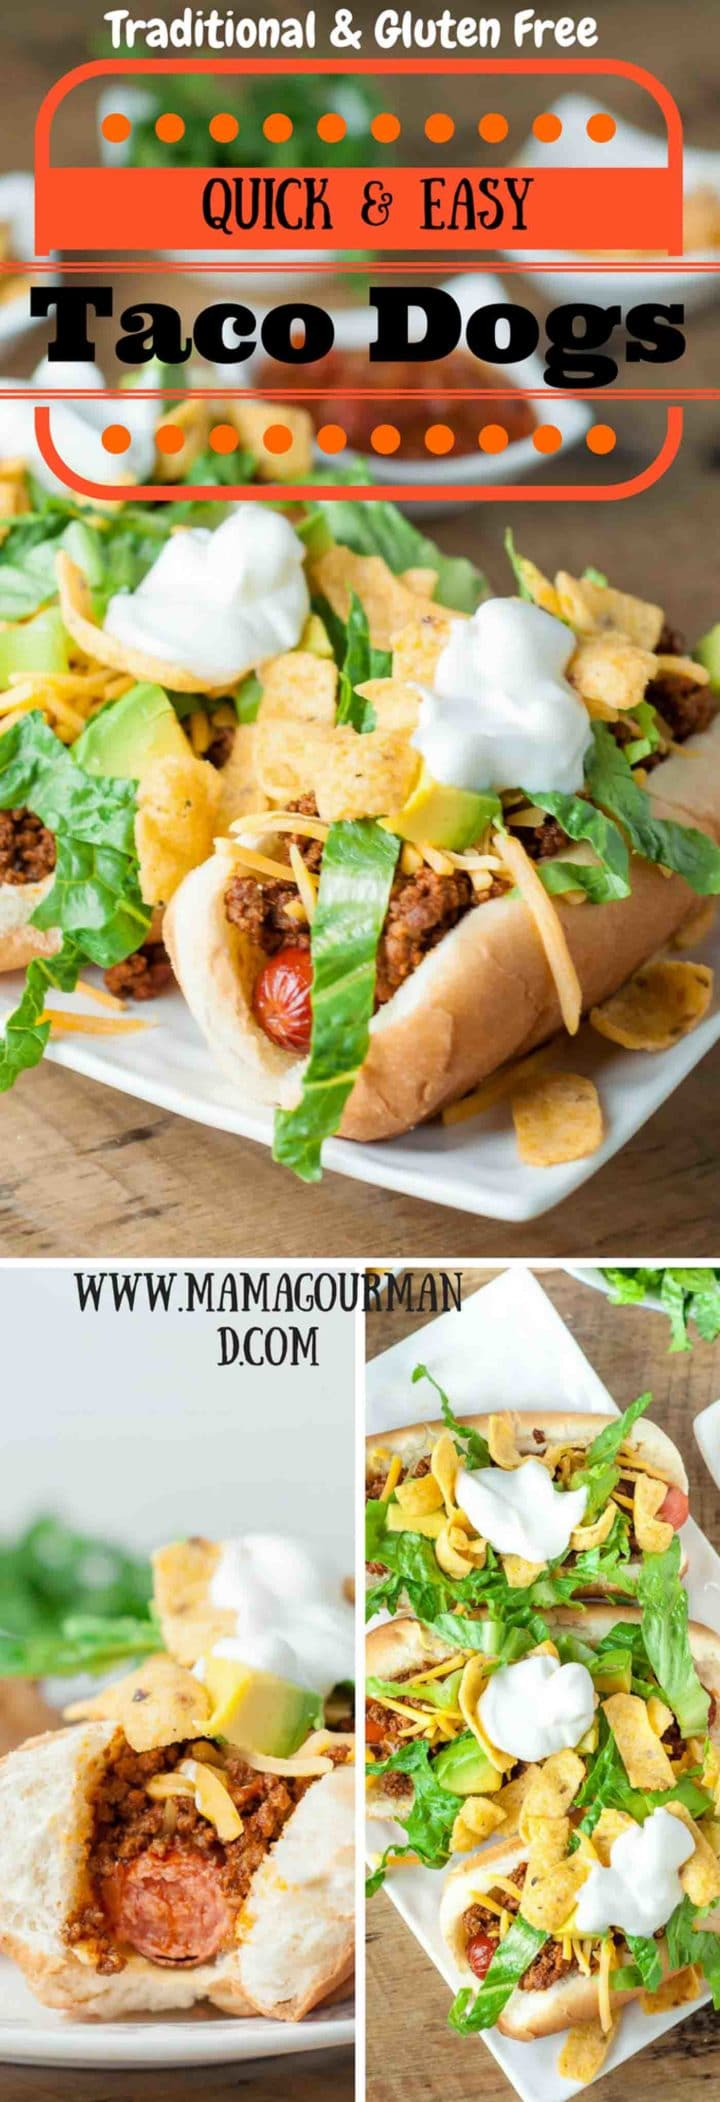 These Quick and Easy Taco Dogs only have a few ingredients and are so simple to throw together. With how easy they are to make, it's hard to believe how out-of-this-world amazing they are! https://www.mamagourmand.com